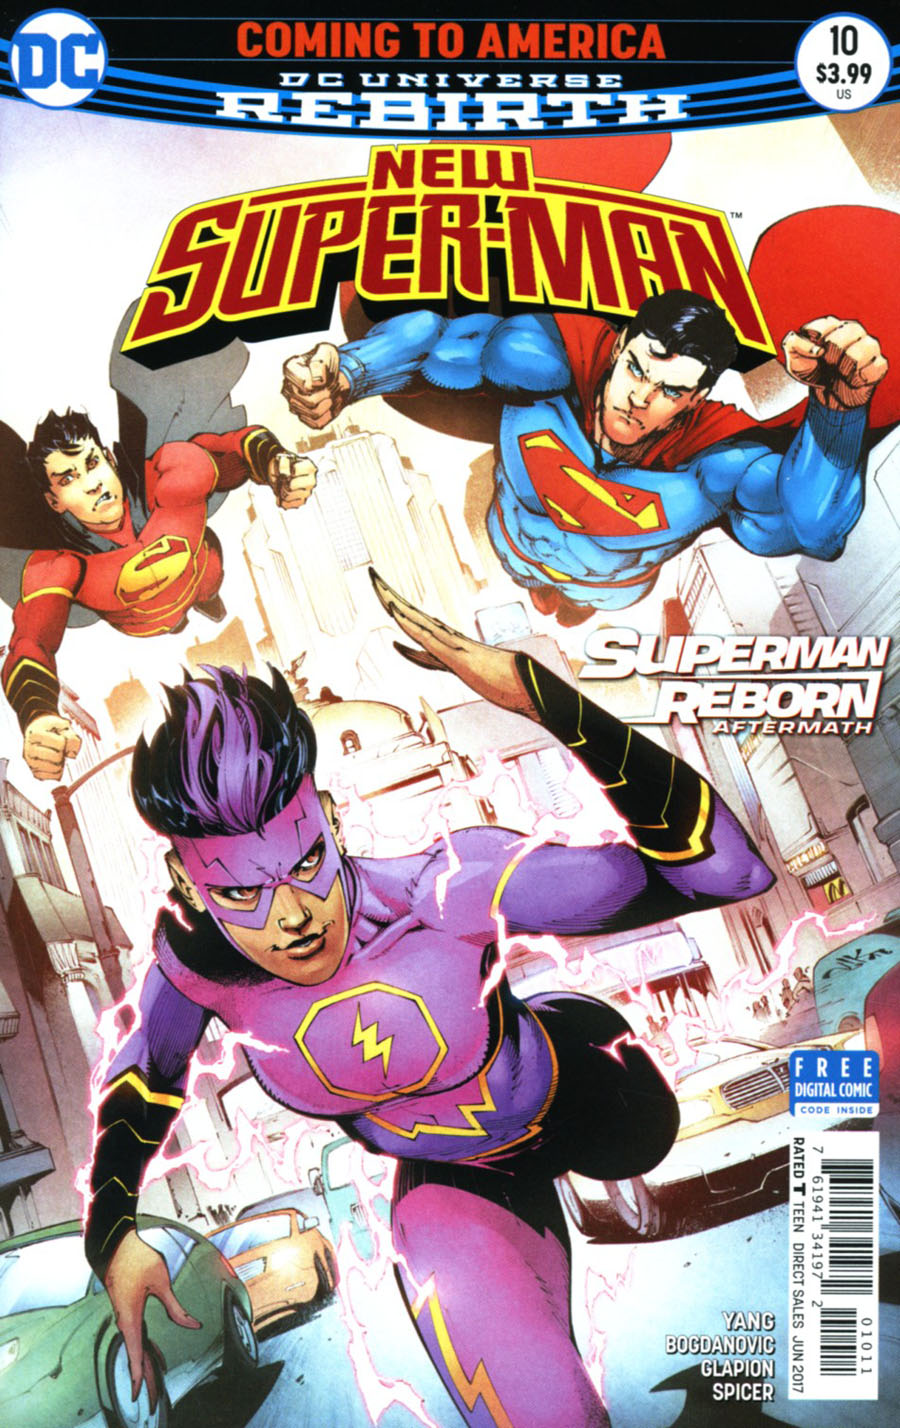 New Super-Man #10